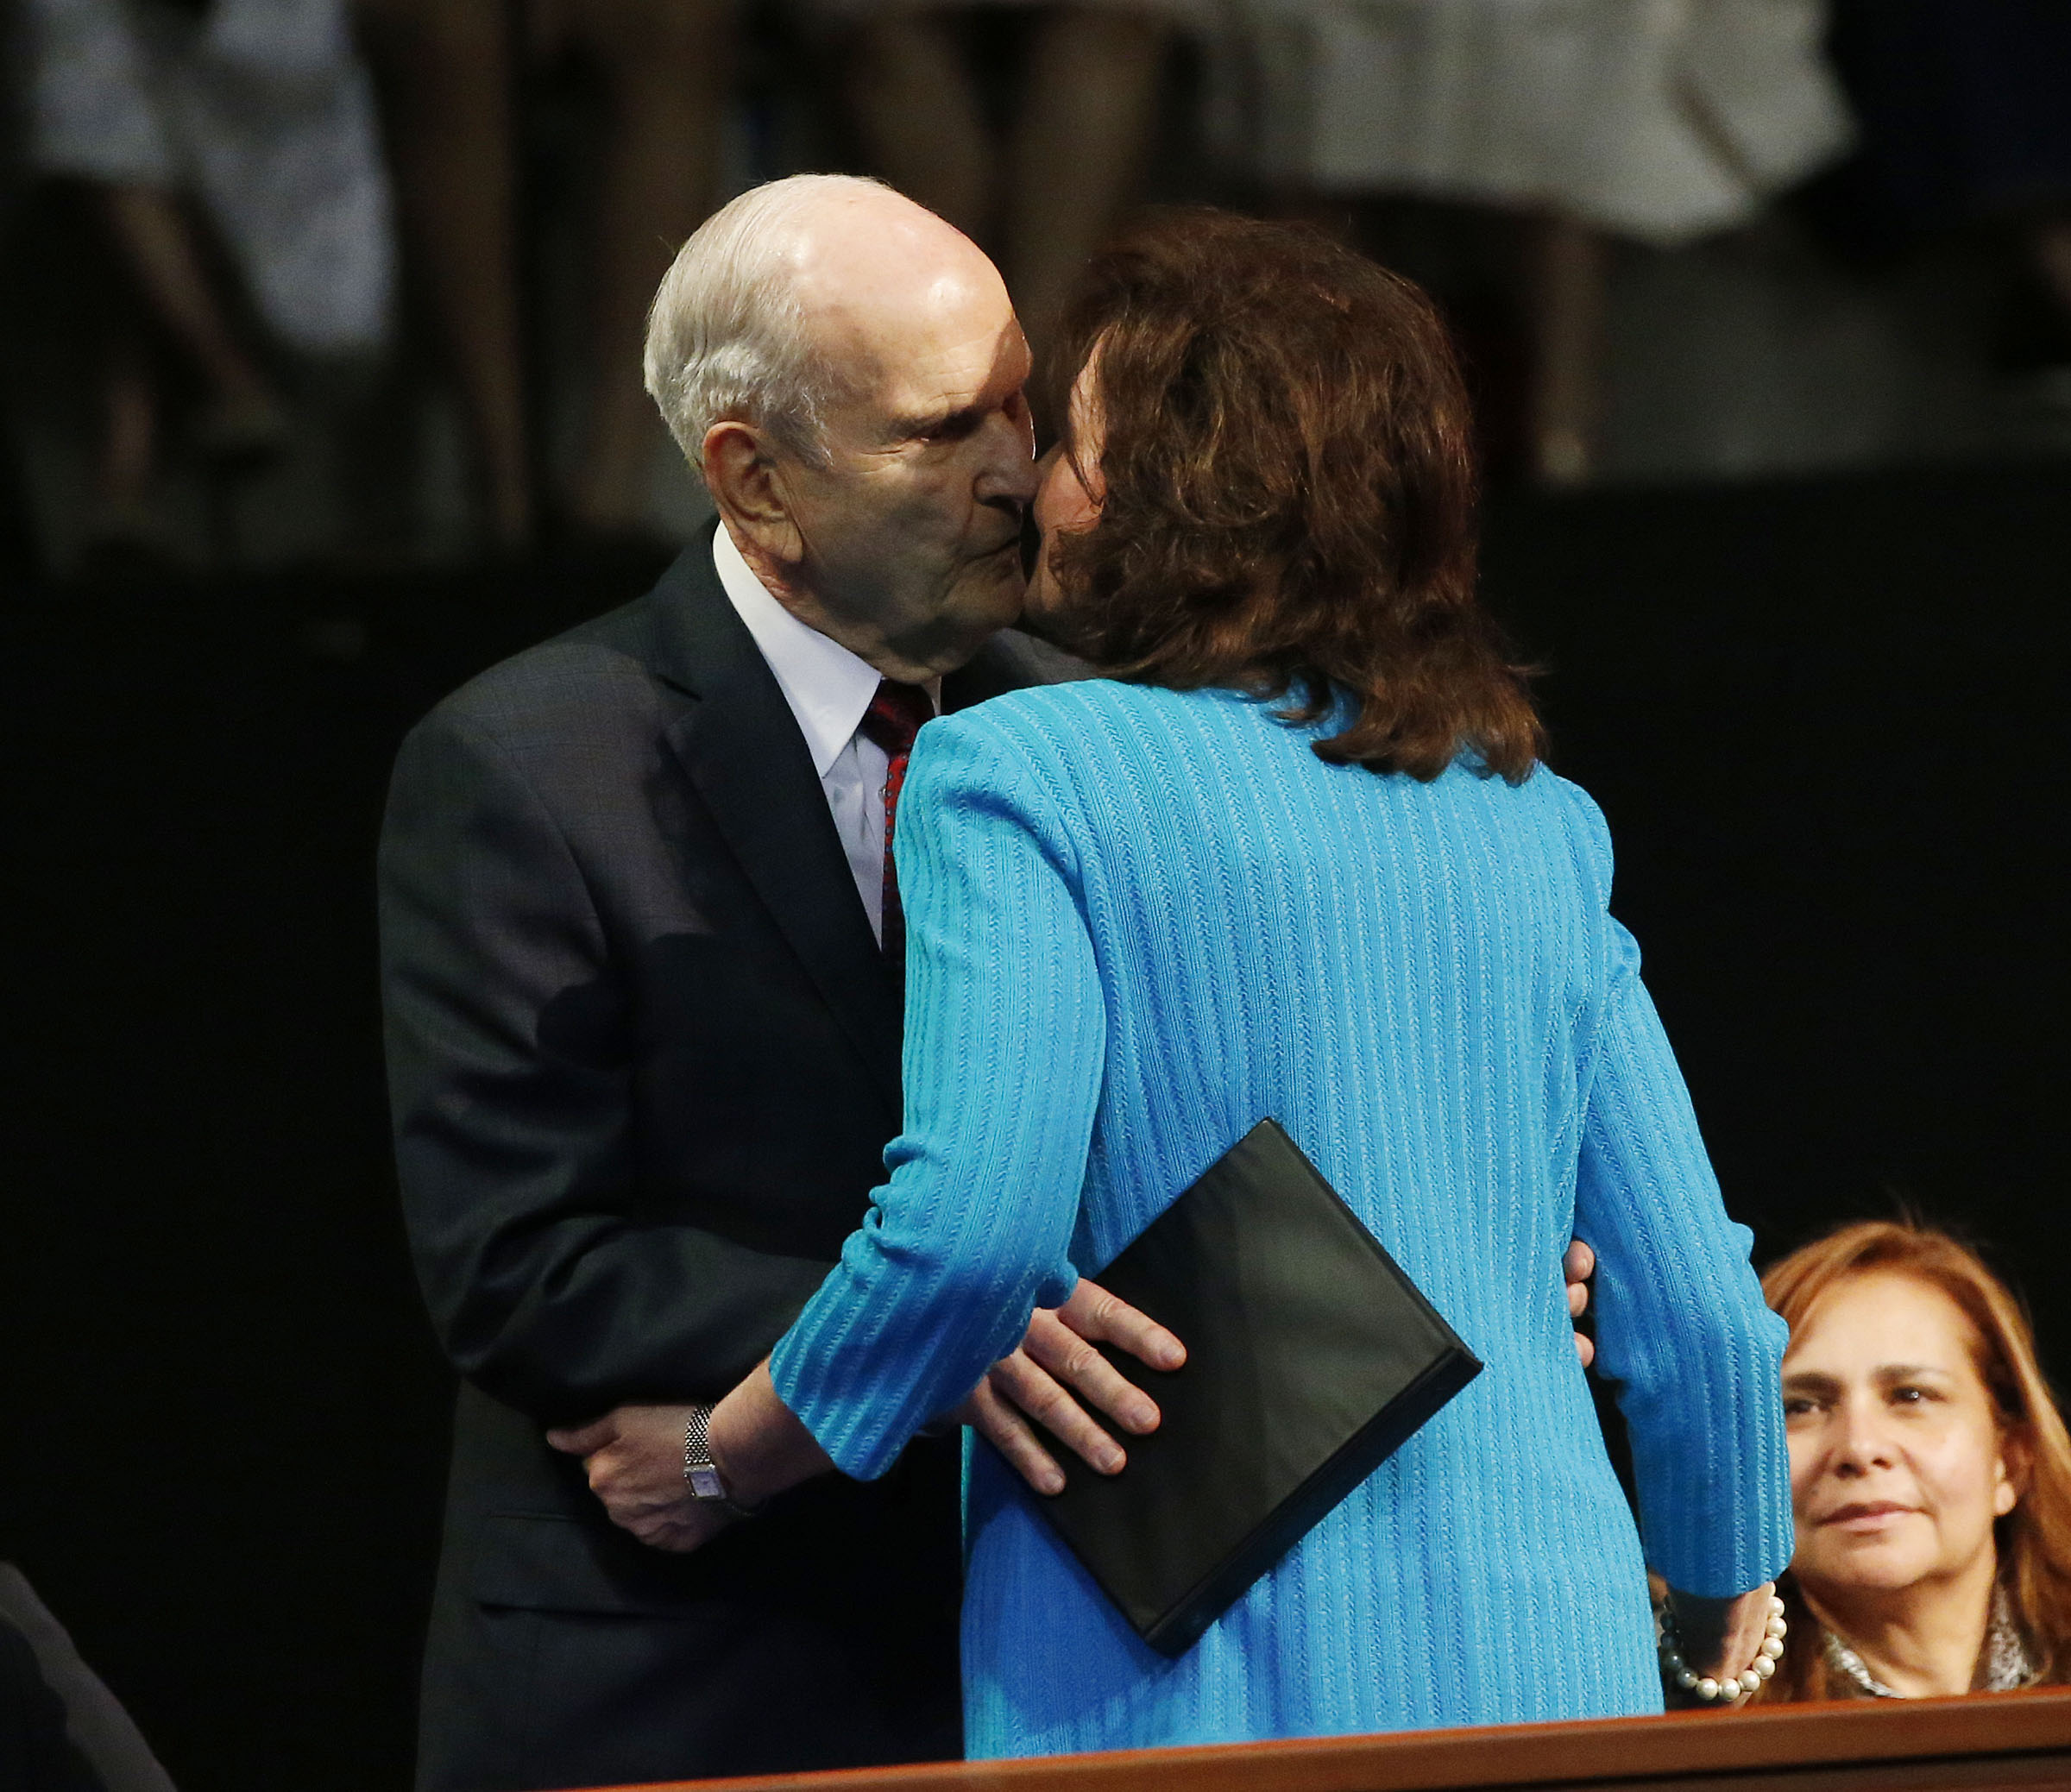 President Russell M. Nelson of The Church of Jesus Christ of Latter-day Saints kisses his wife, Sister Wendy Nelson, after she speaks in a Latin America Ministry Tour devotional in Quito, Ecuador, on Monday, Aug. 26, 2019.